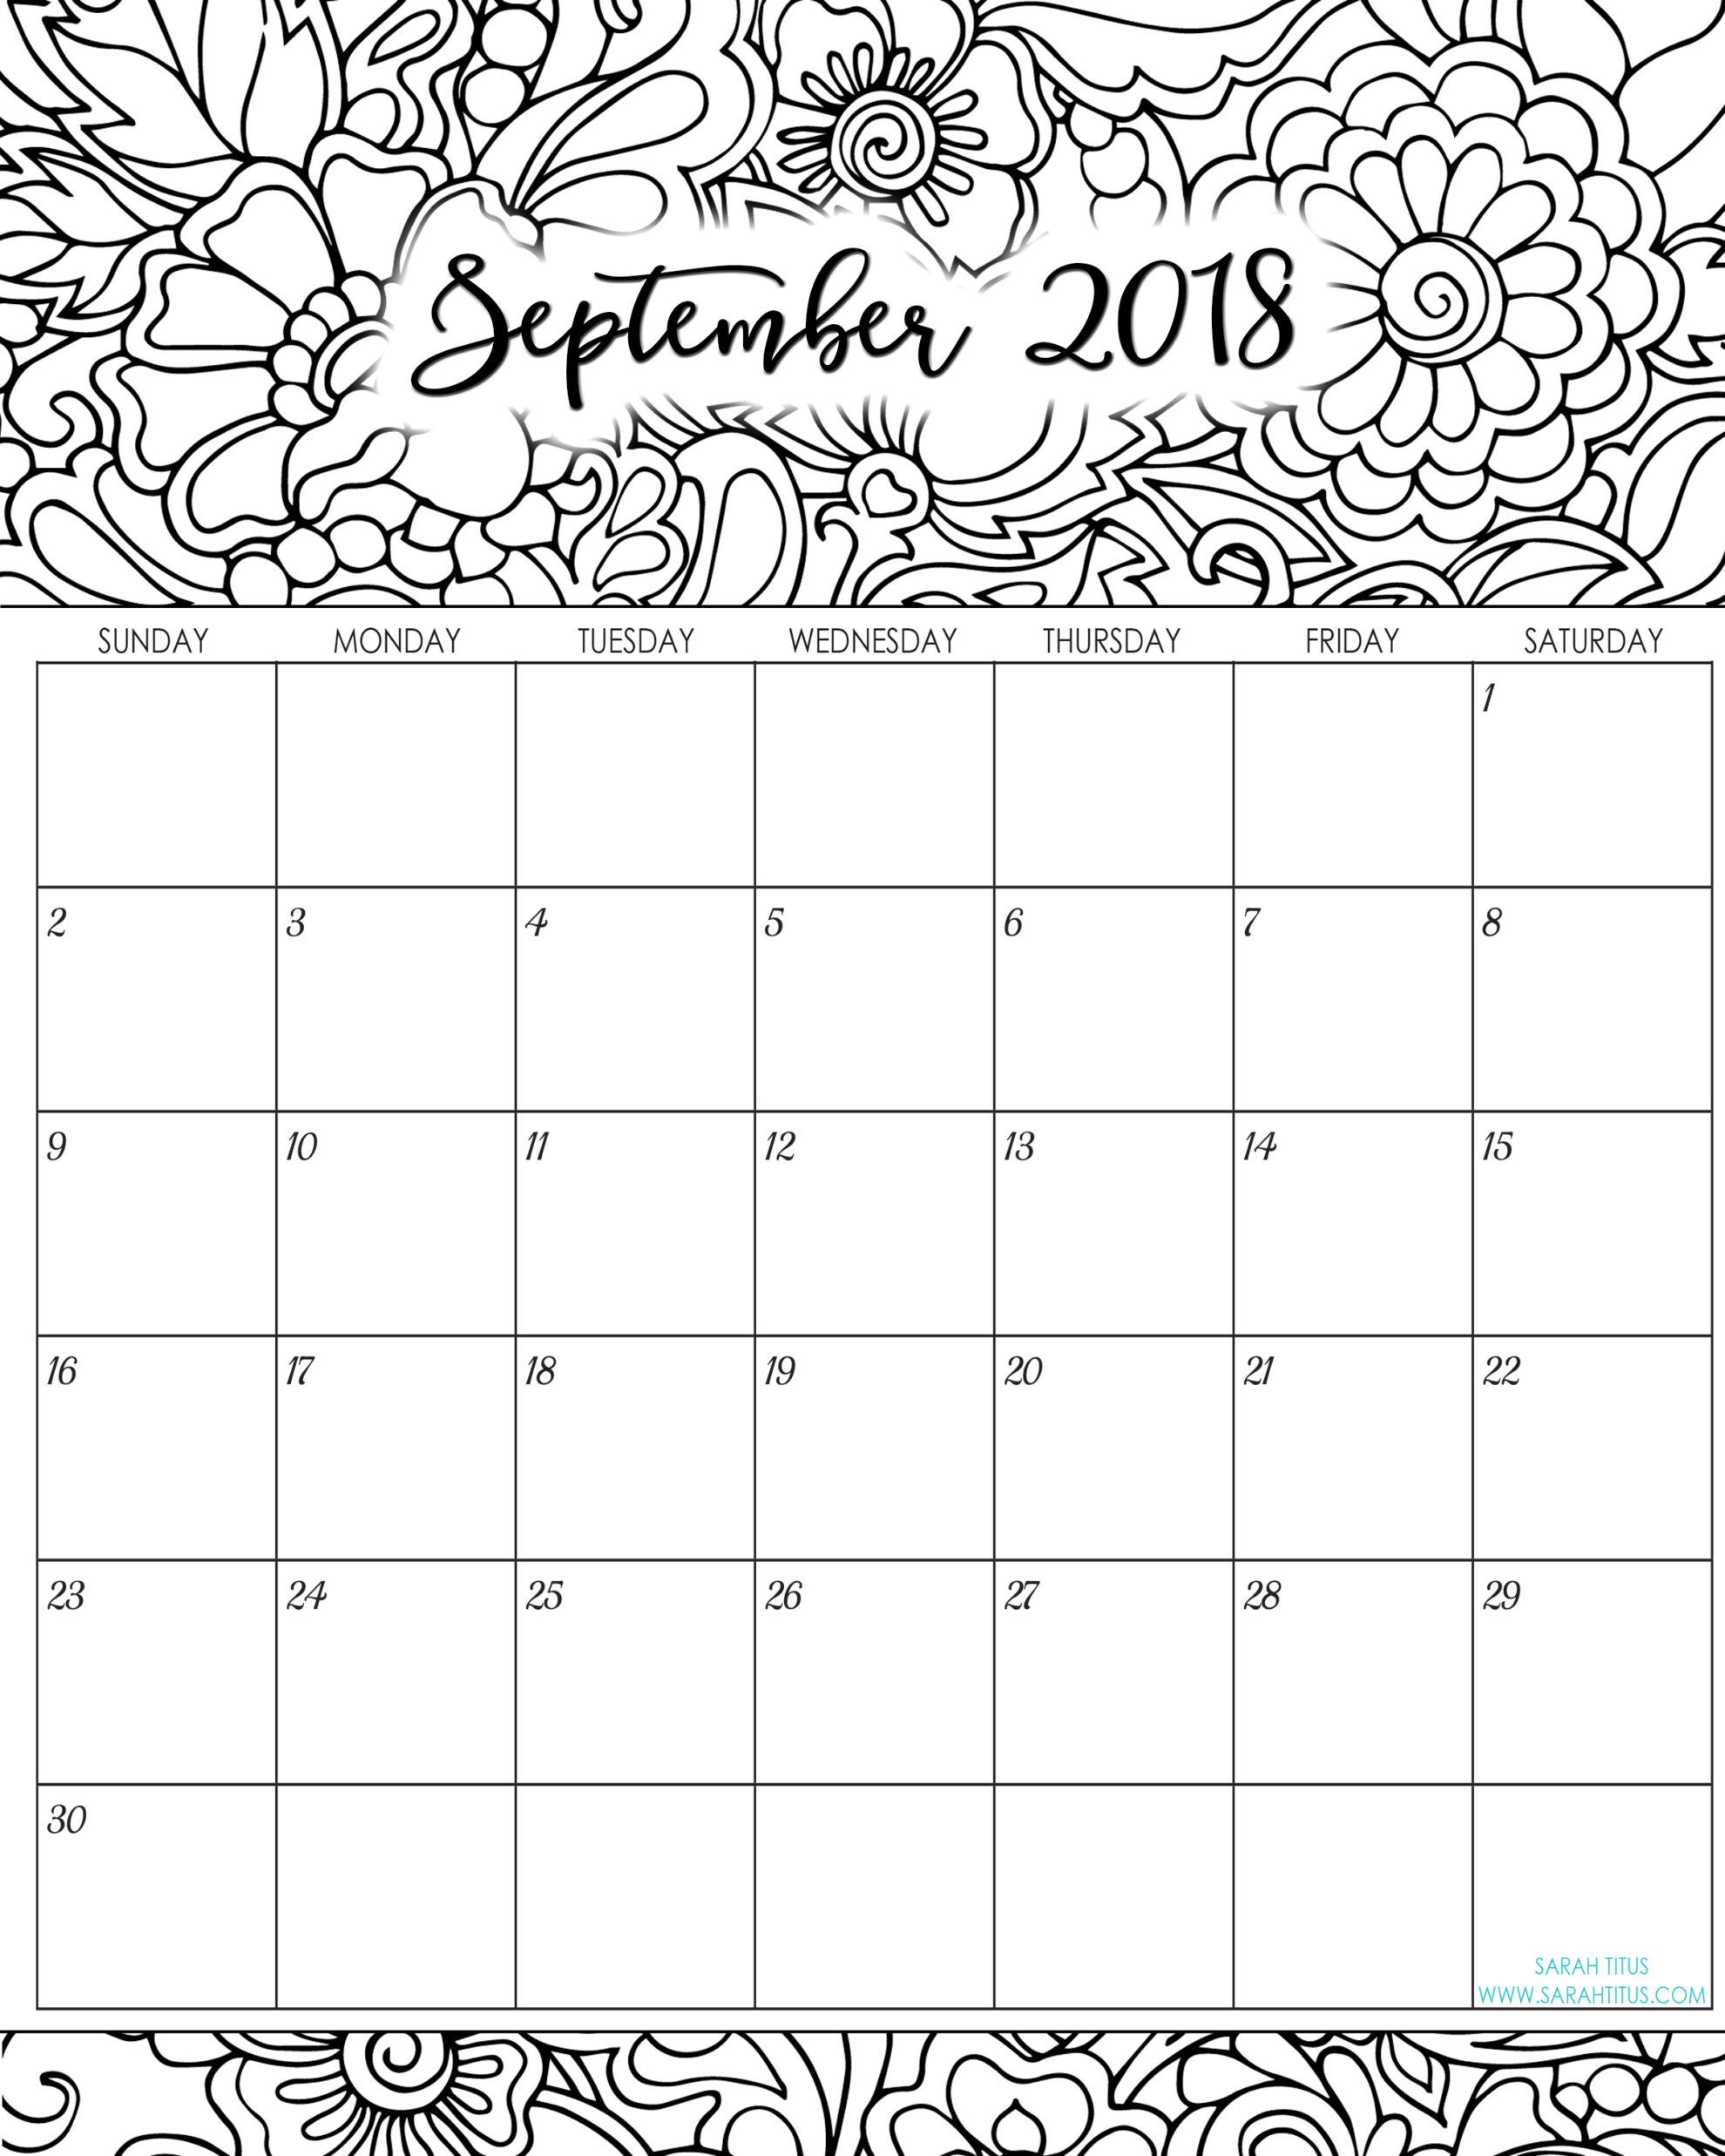 Calendar Coloring Pages 2018 Coloring Pages Ideas